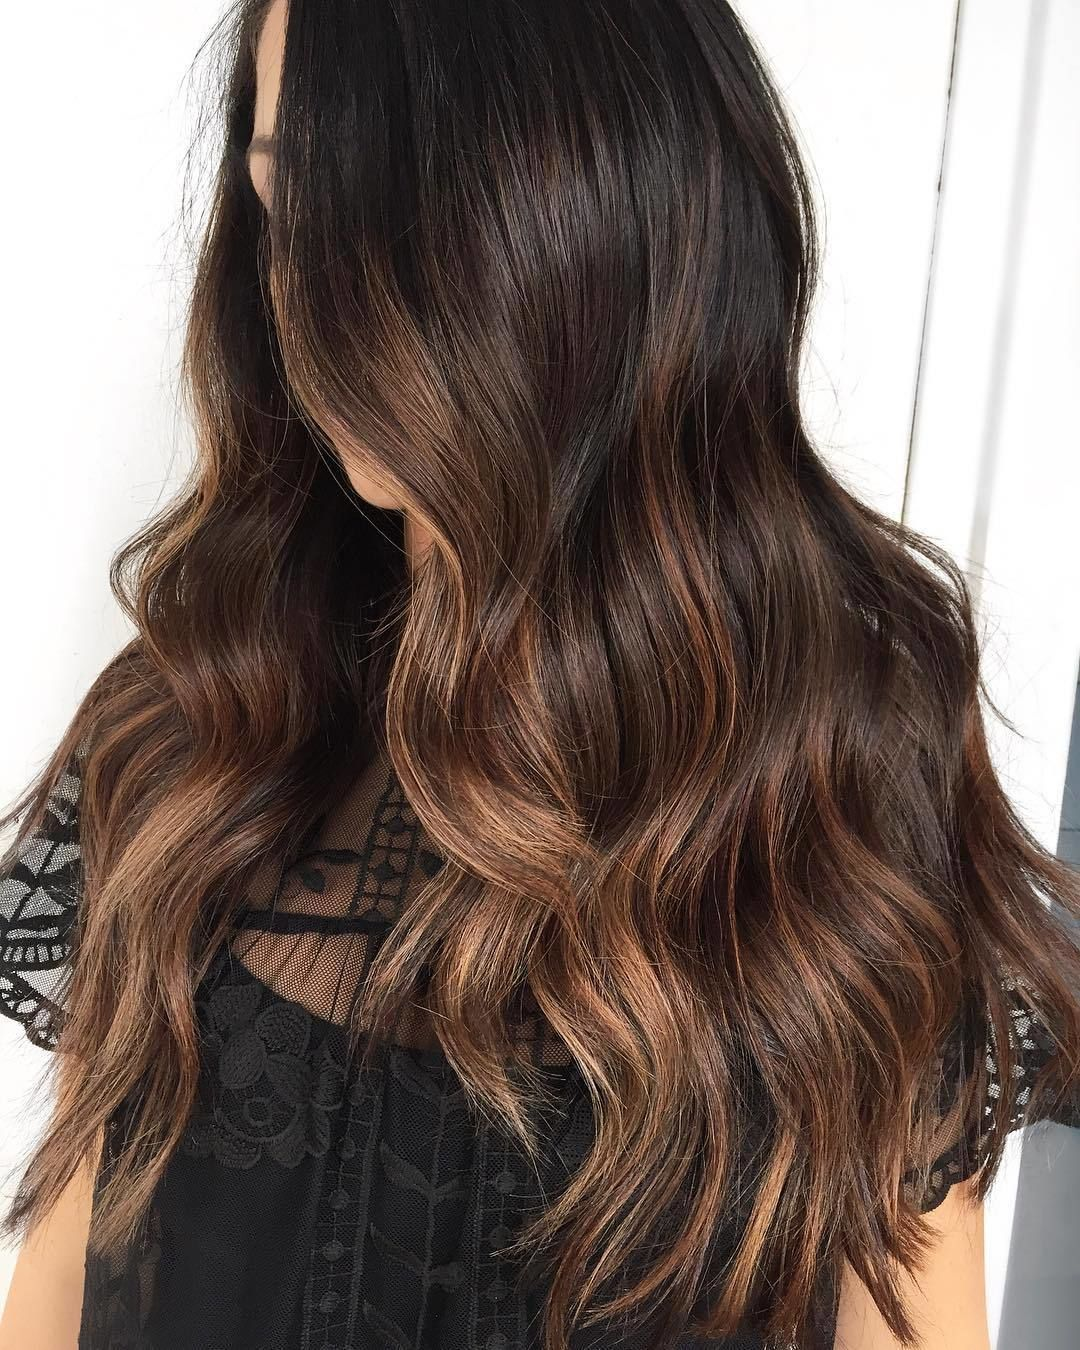 caramel espresso #lookdujour #ldj #waves #wavyhair #hair #brunette